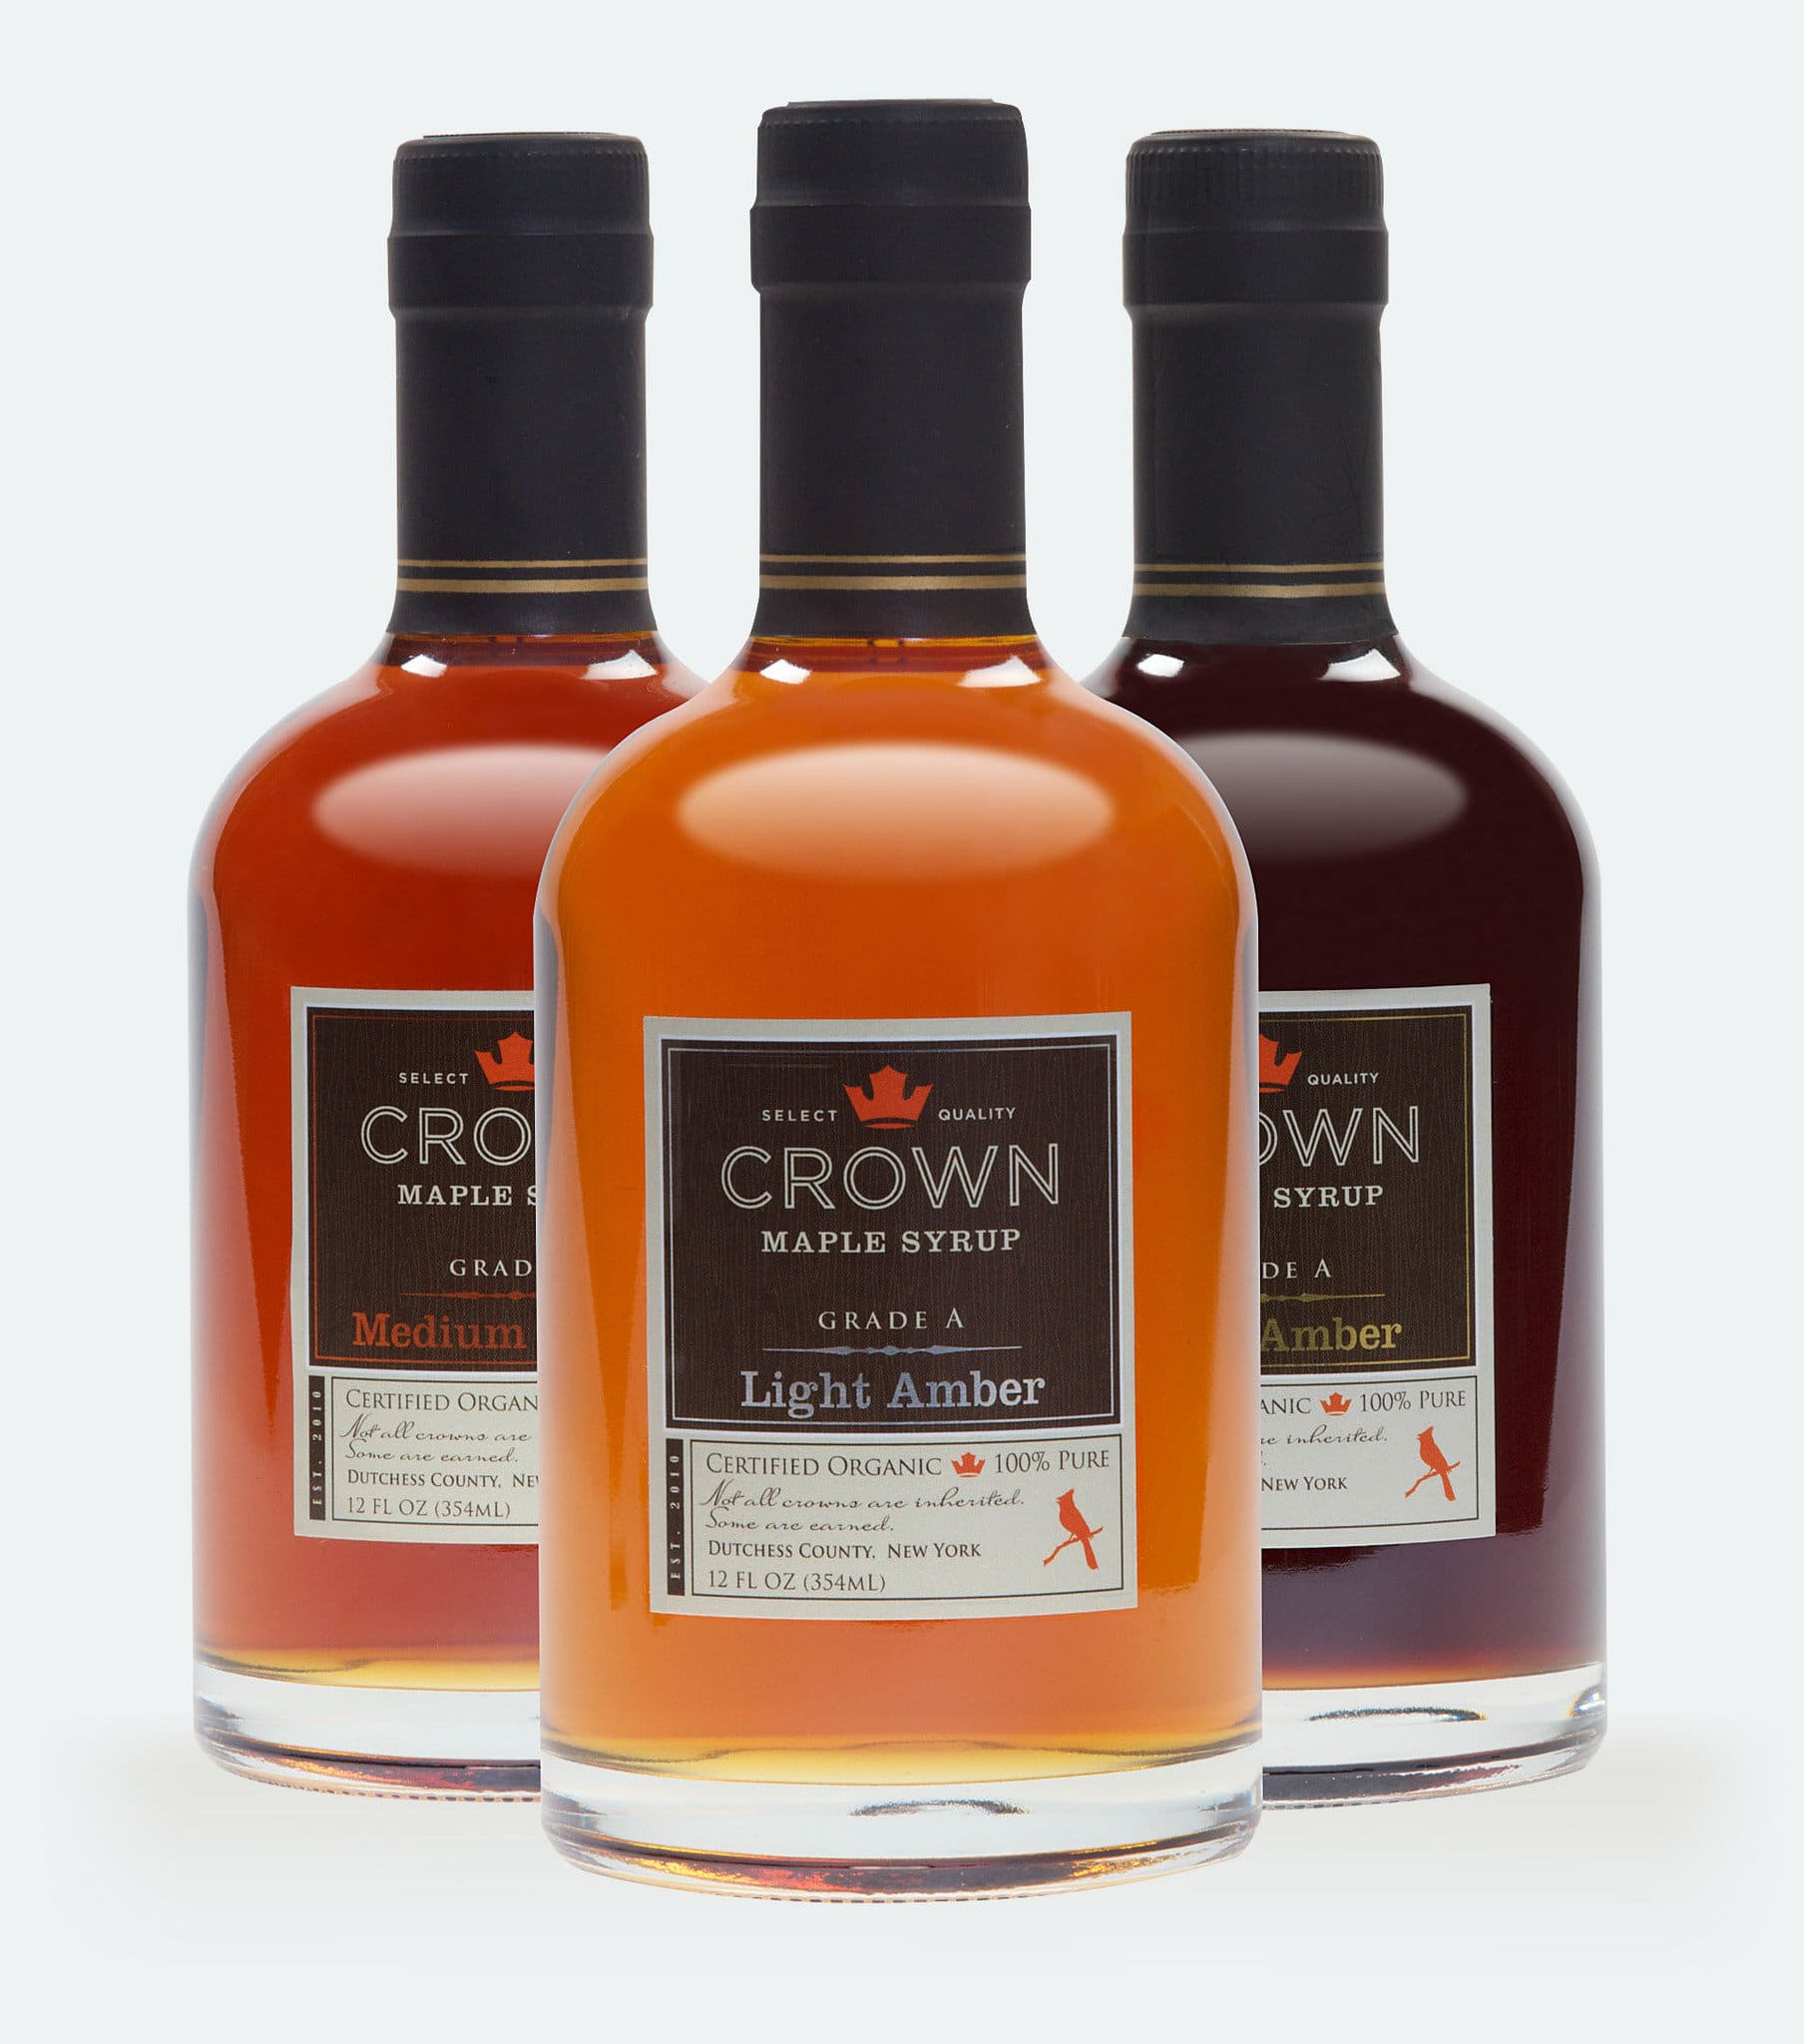 crownmaple